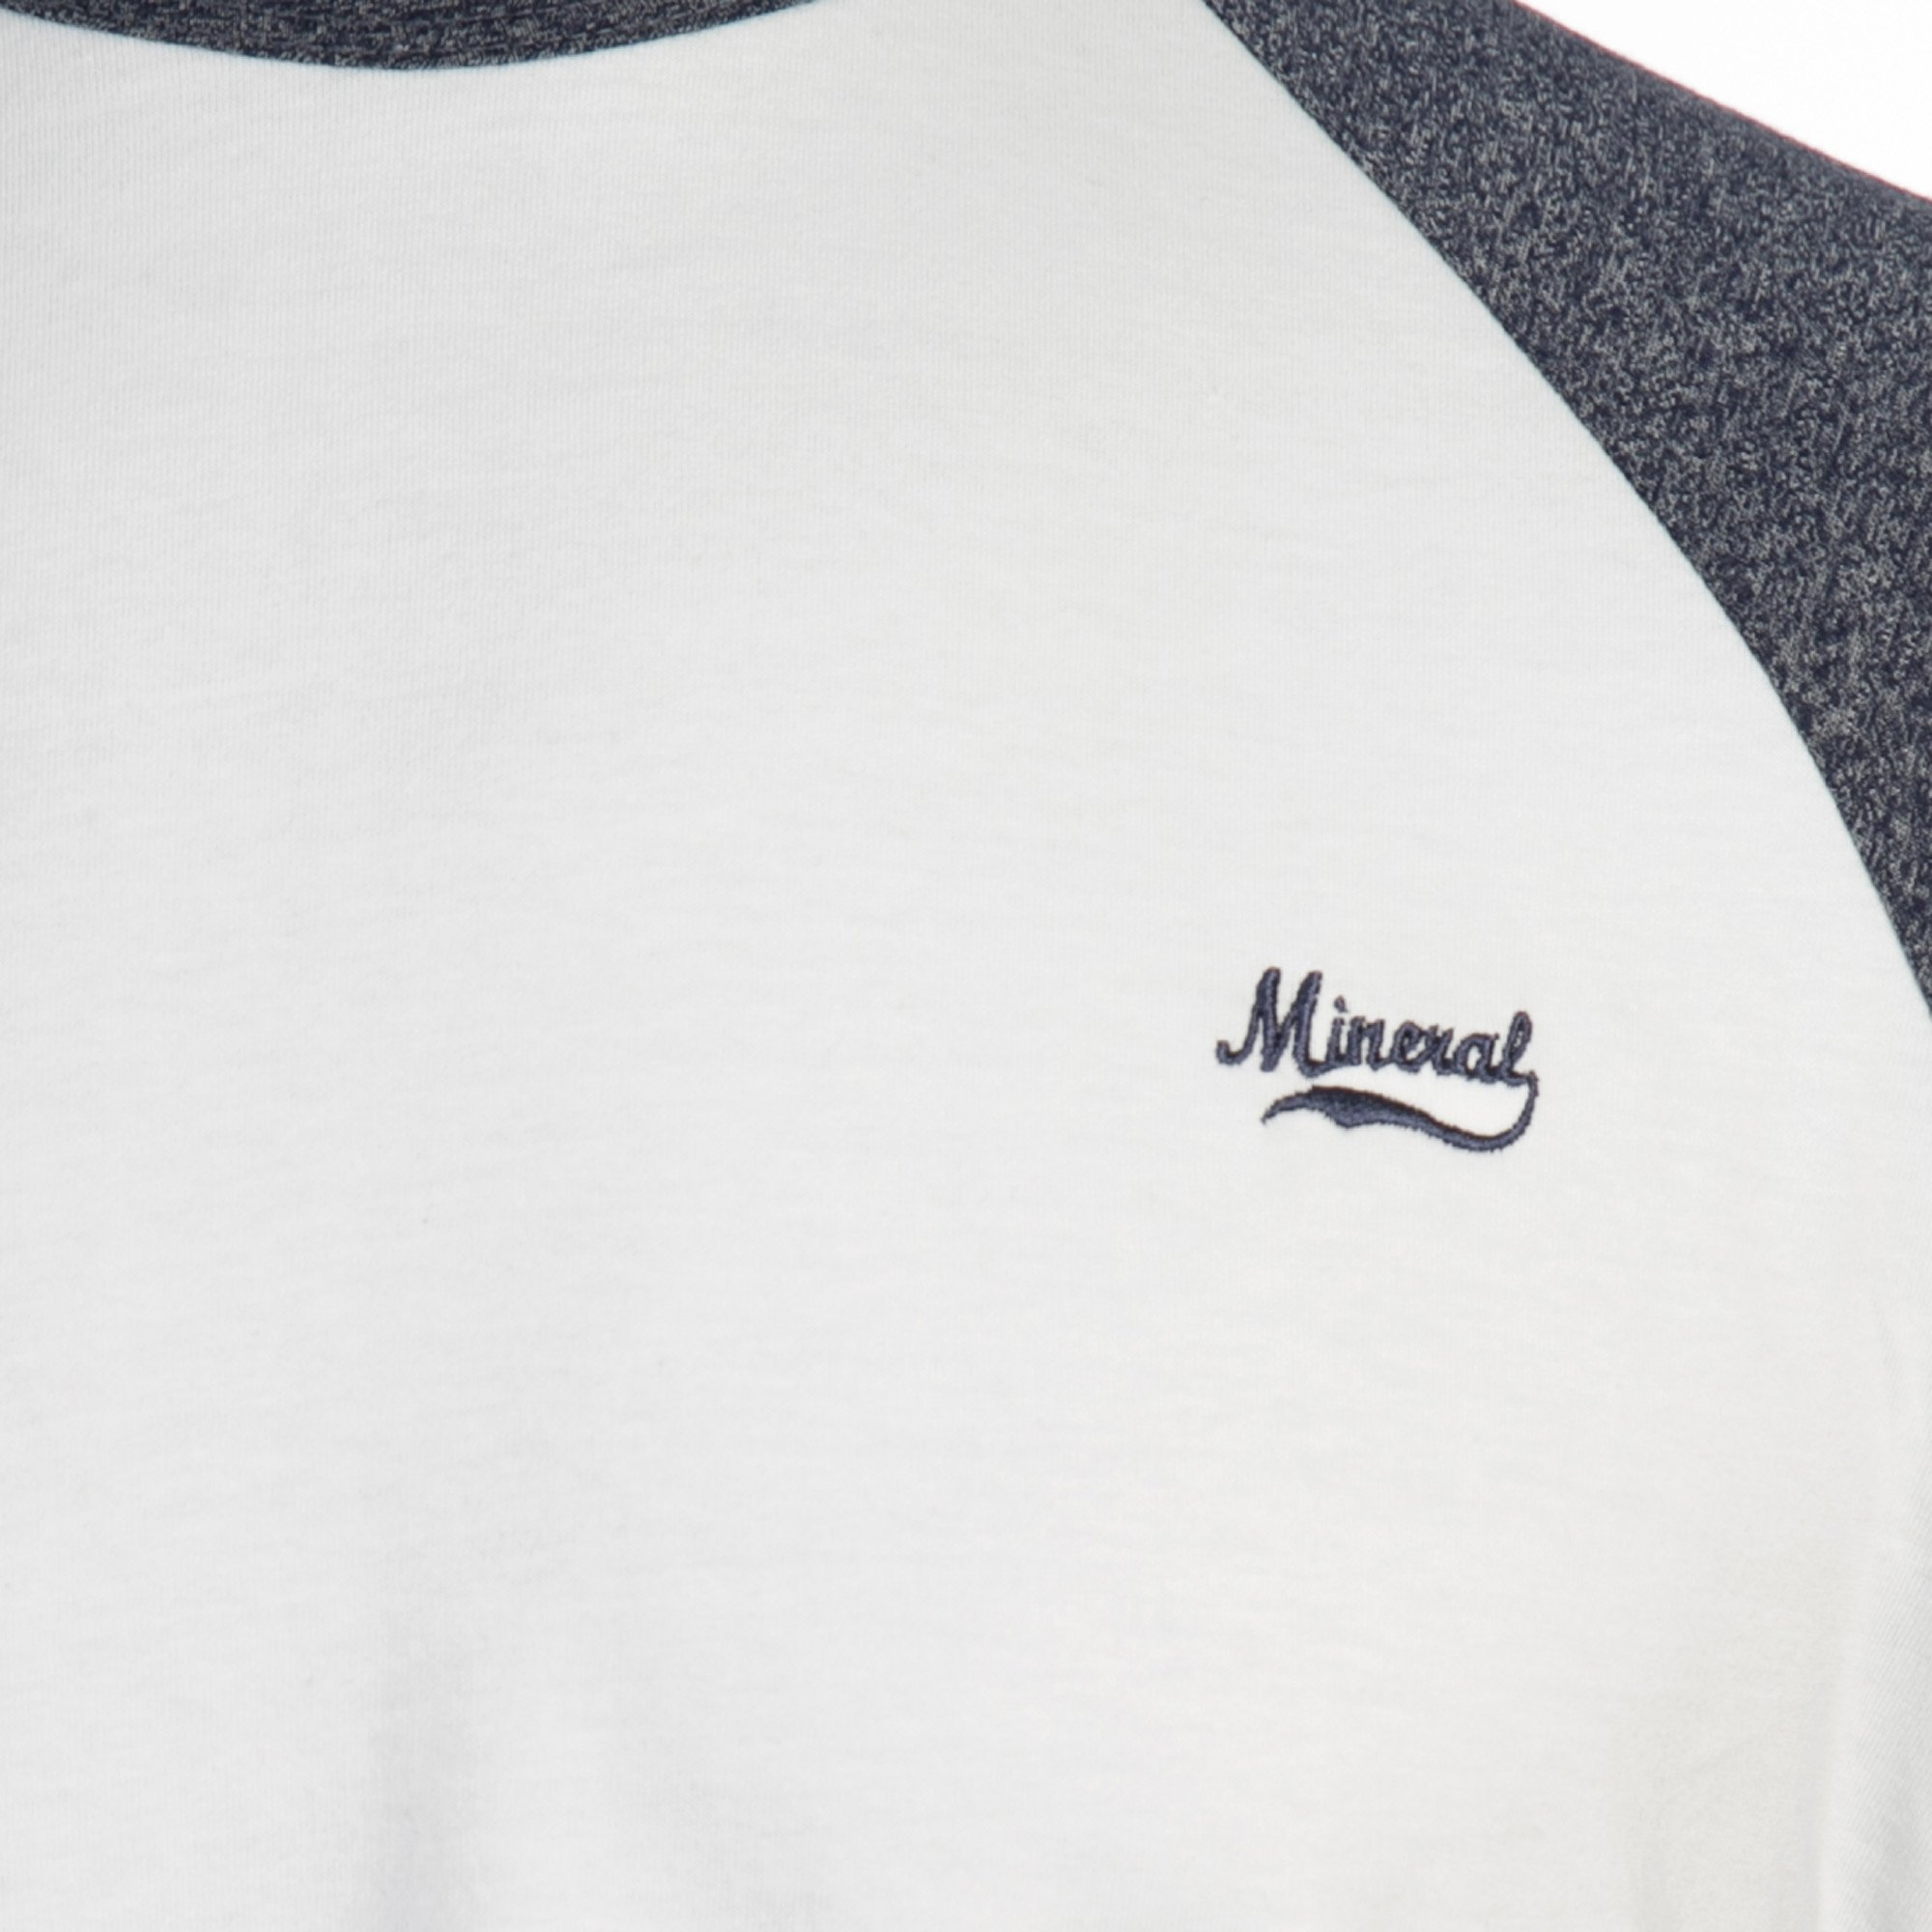 GRAMATAL WHITE NAVY LS TOP